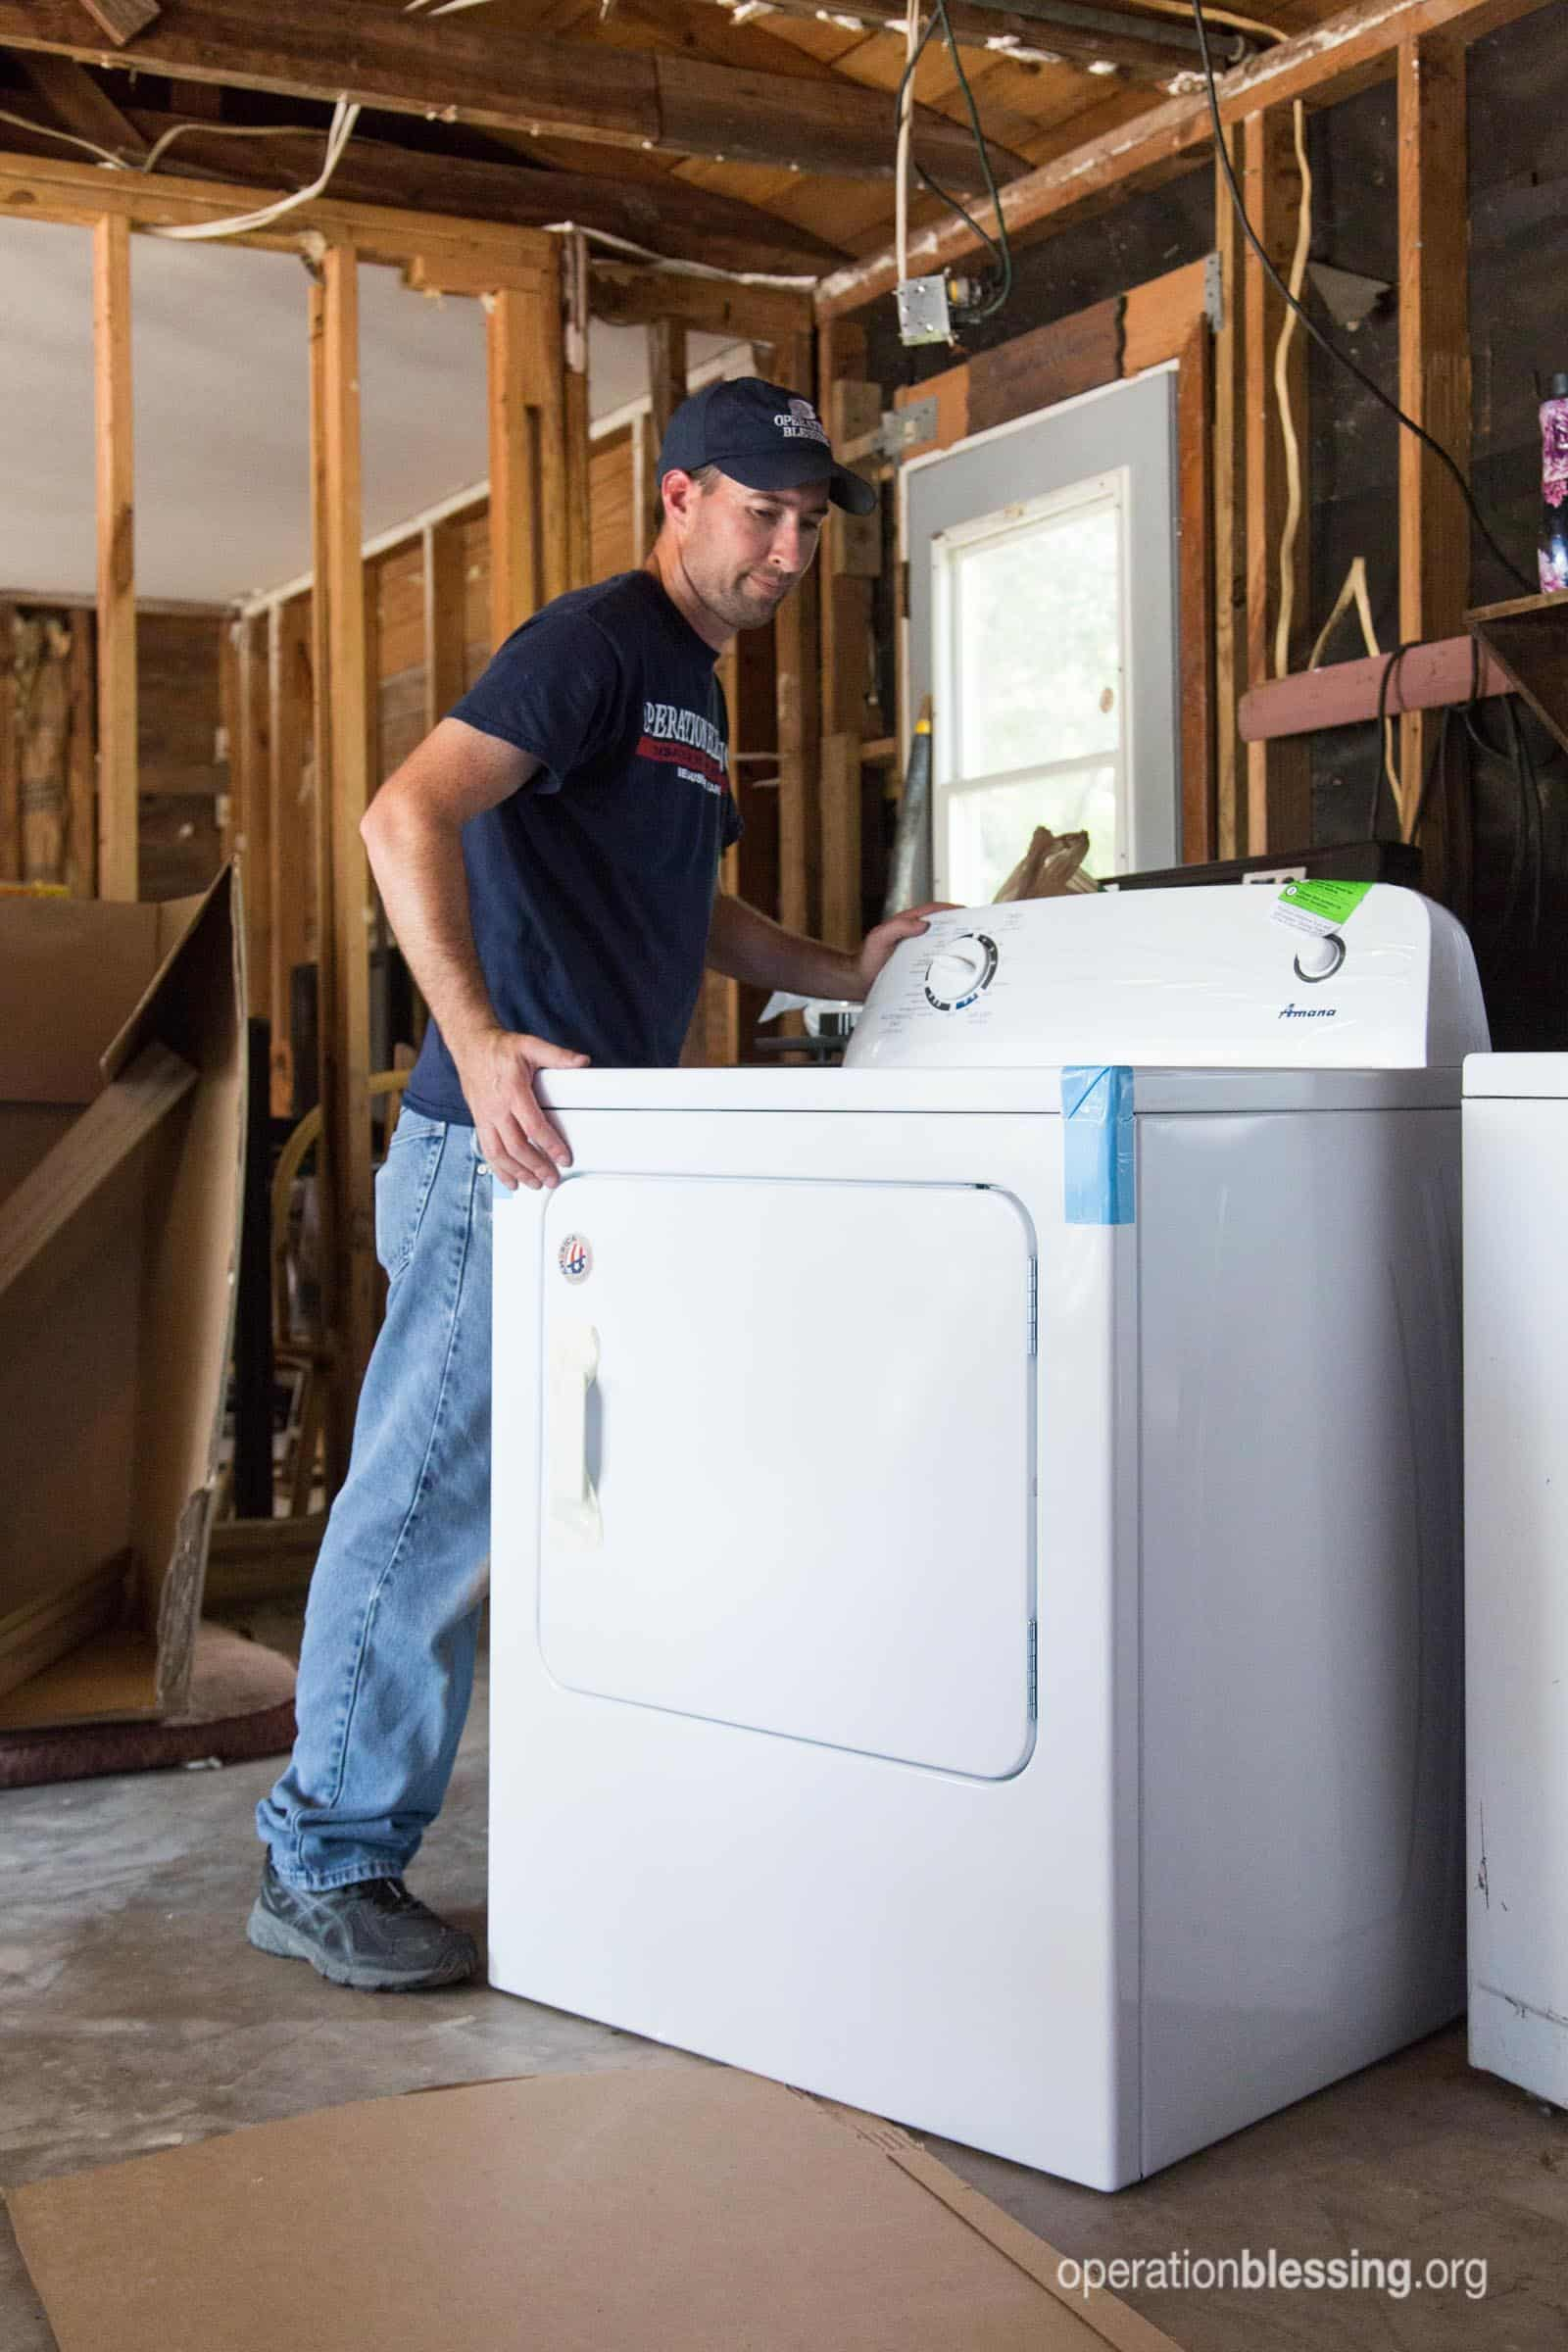 An Operation Blessing team member installs the dryer for Priscilla.